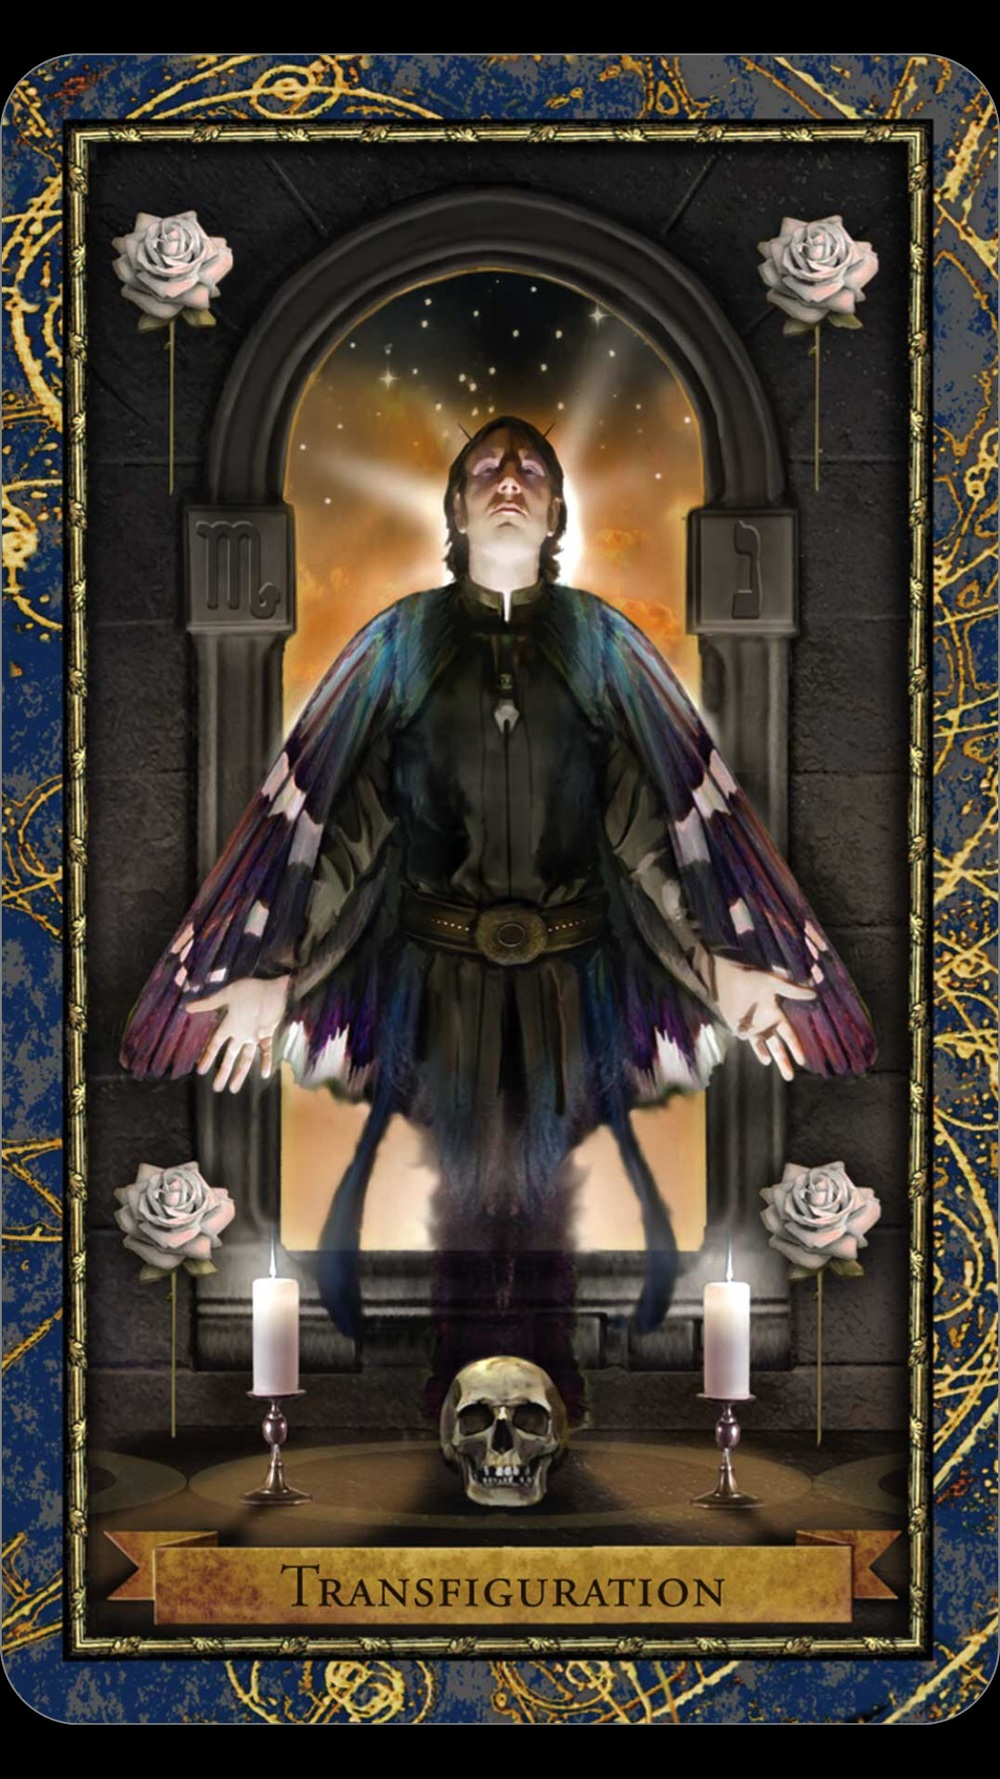 Deck Used: The Wizard's Tarot